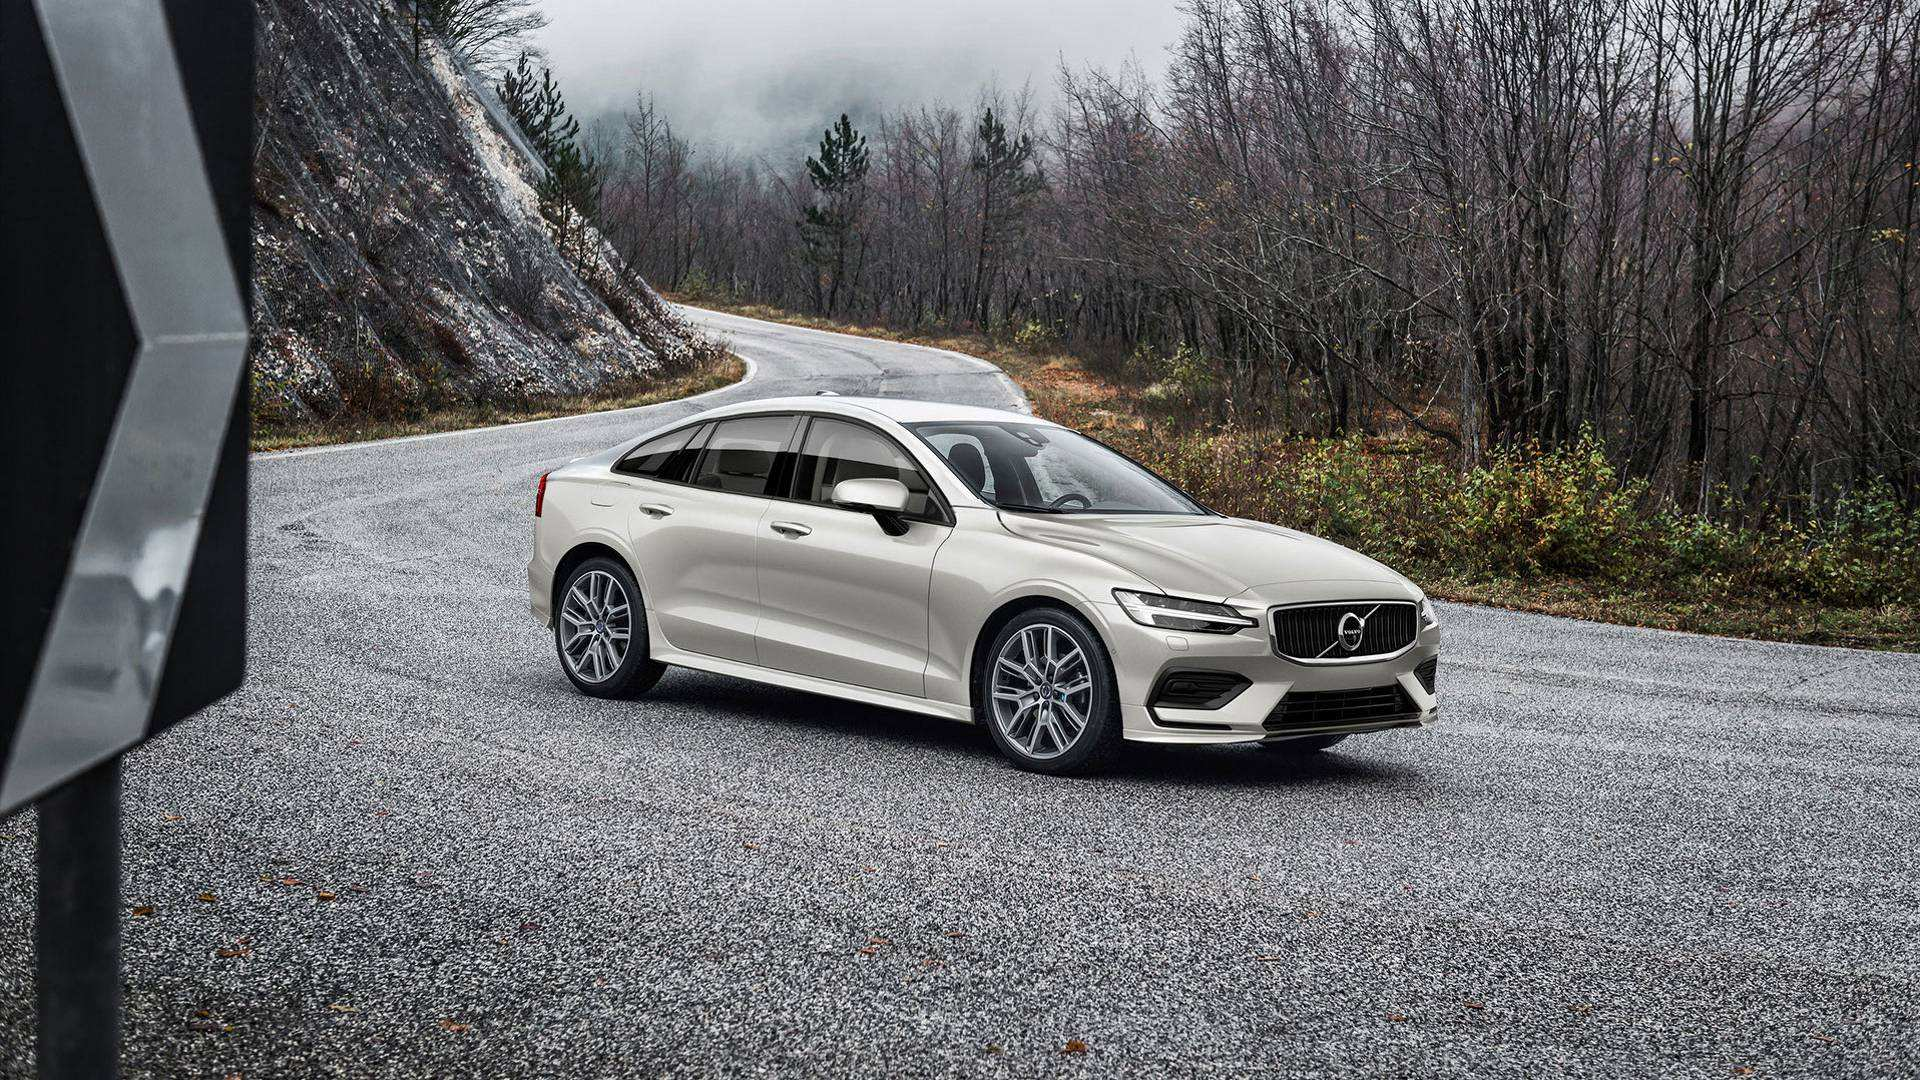 21 Concept of New 2019 Volvo S60 Price with New 2019 Volvo S60